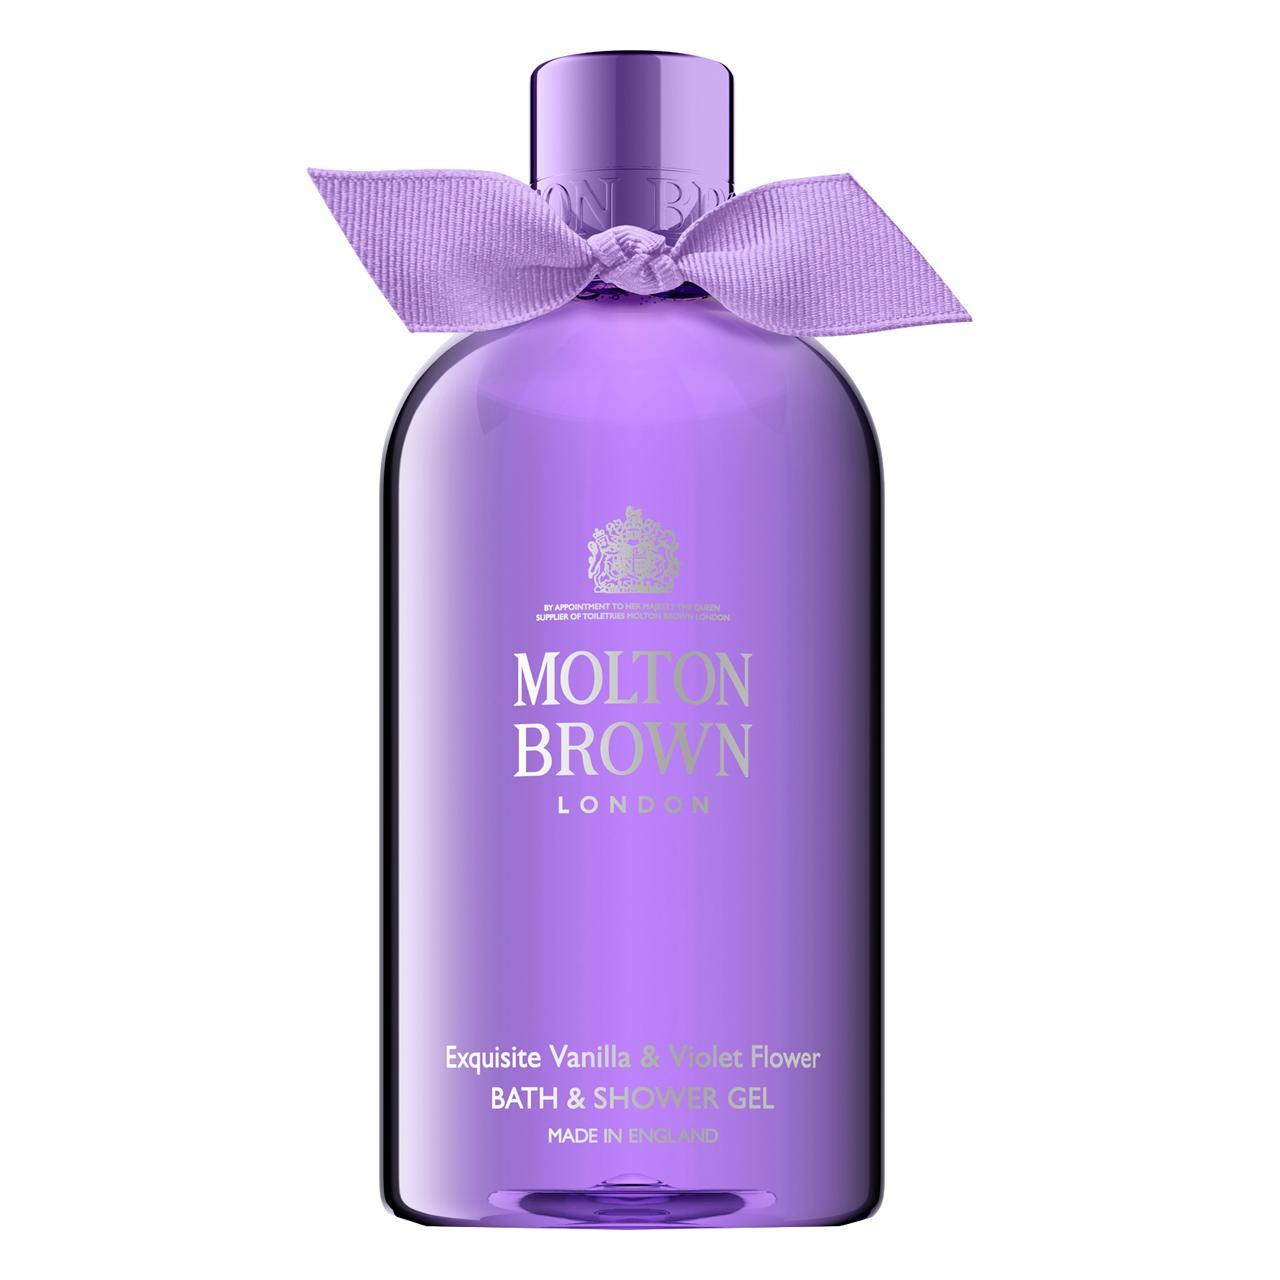 An image of Molton Brown Exquisite Vanilla & Violet Flower Bath & Shower Gel